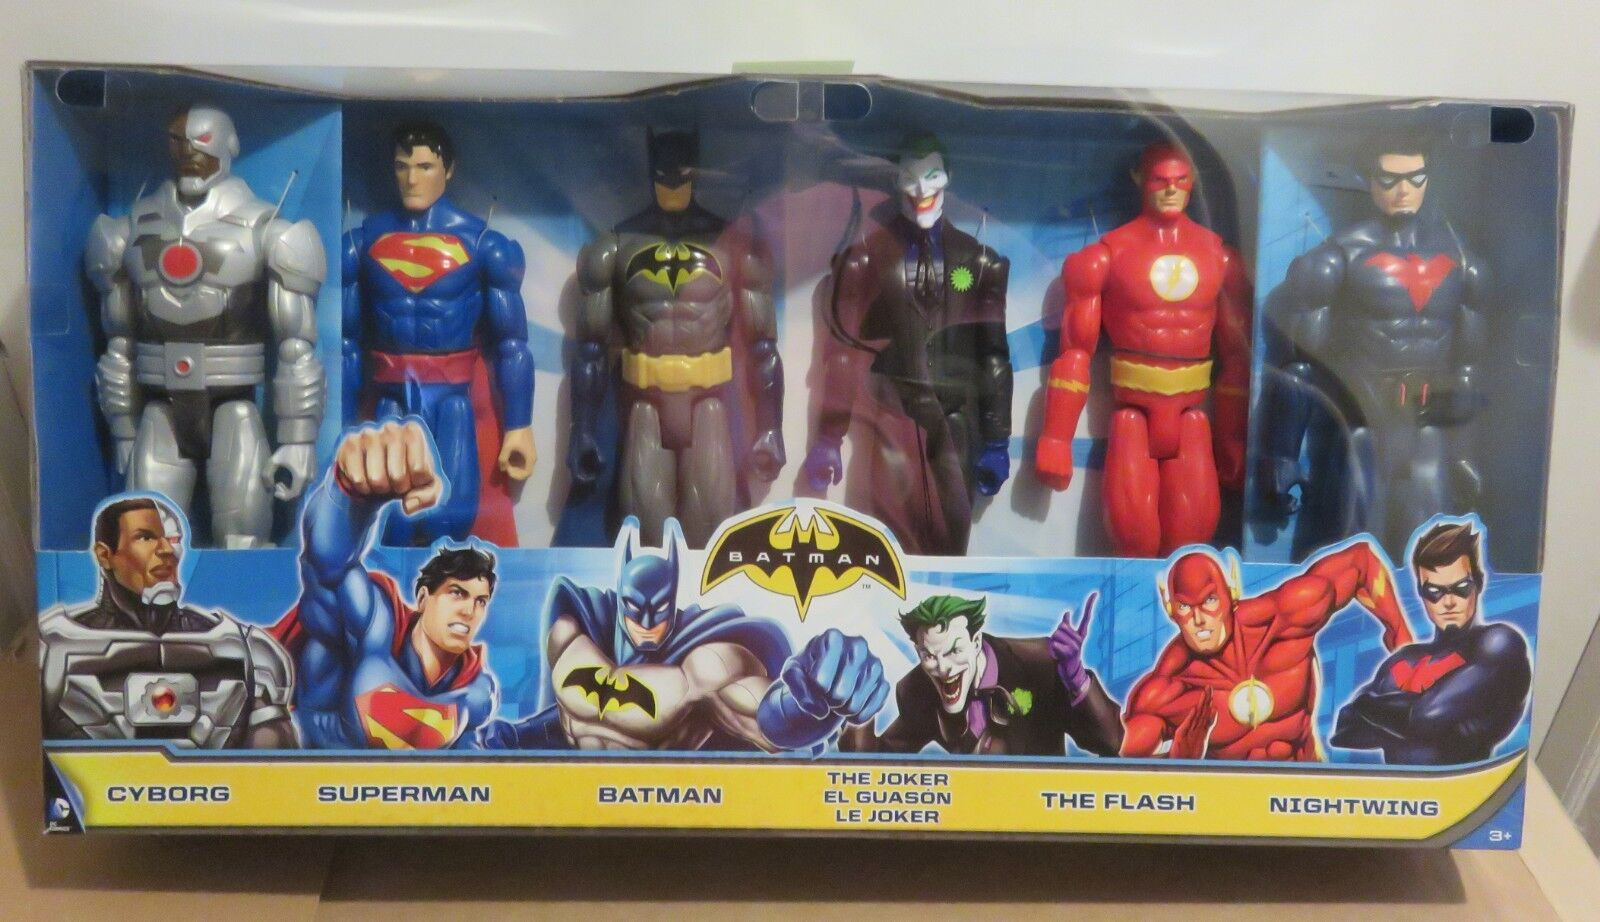 Batman 6 zahlen - cyborg, superman, batman, der joker flash nightwing neue